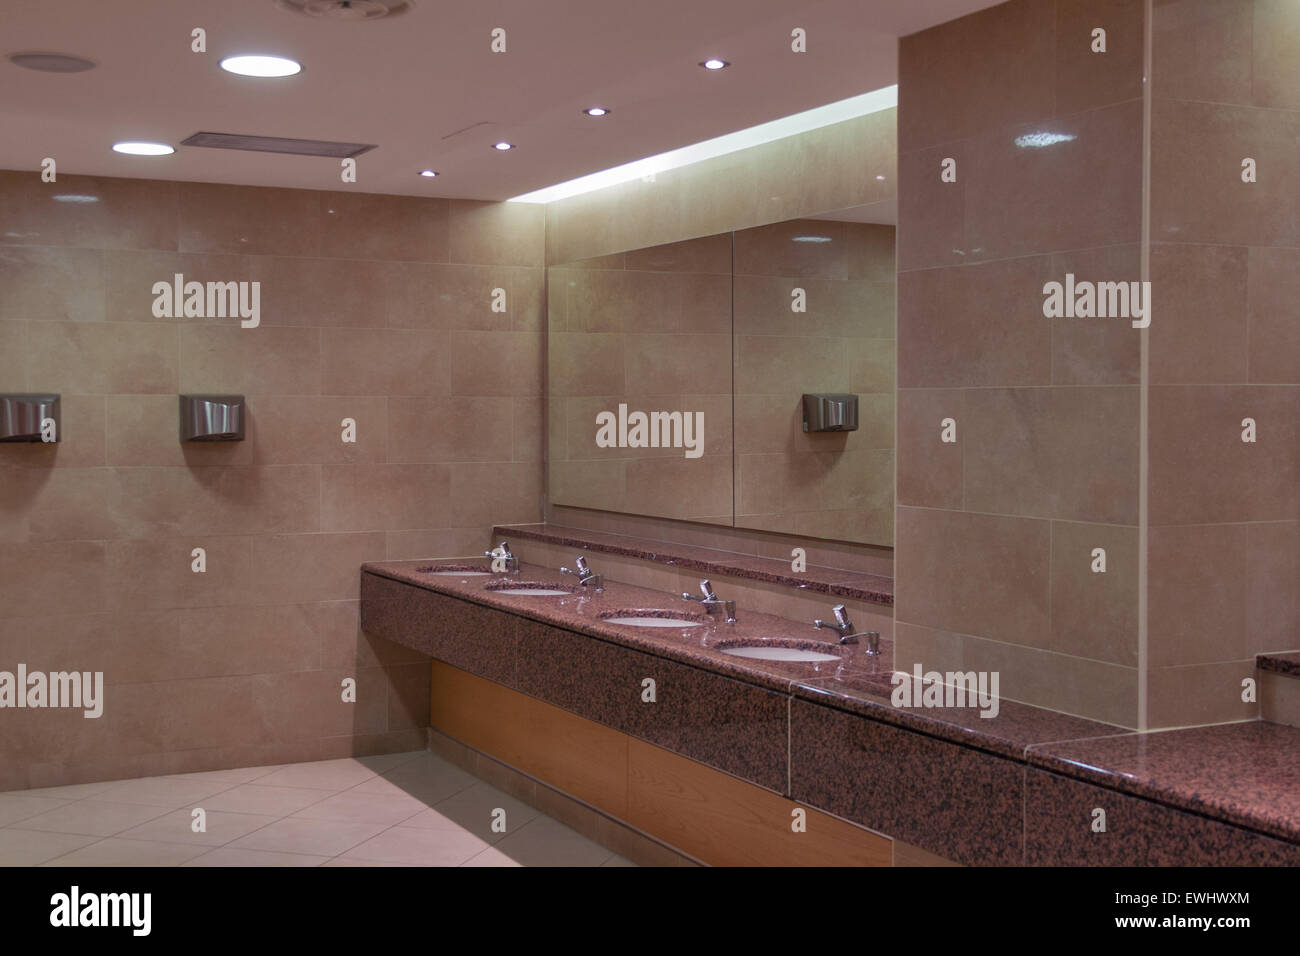 Sinks In A Public Toilet With Mirror And Hand Dryers